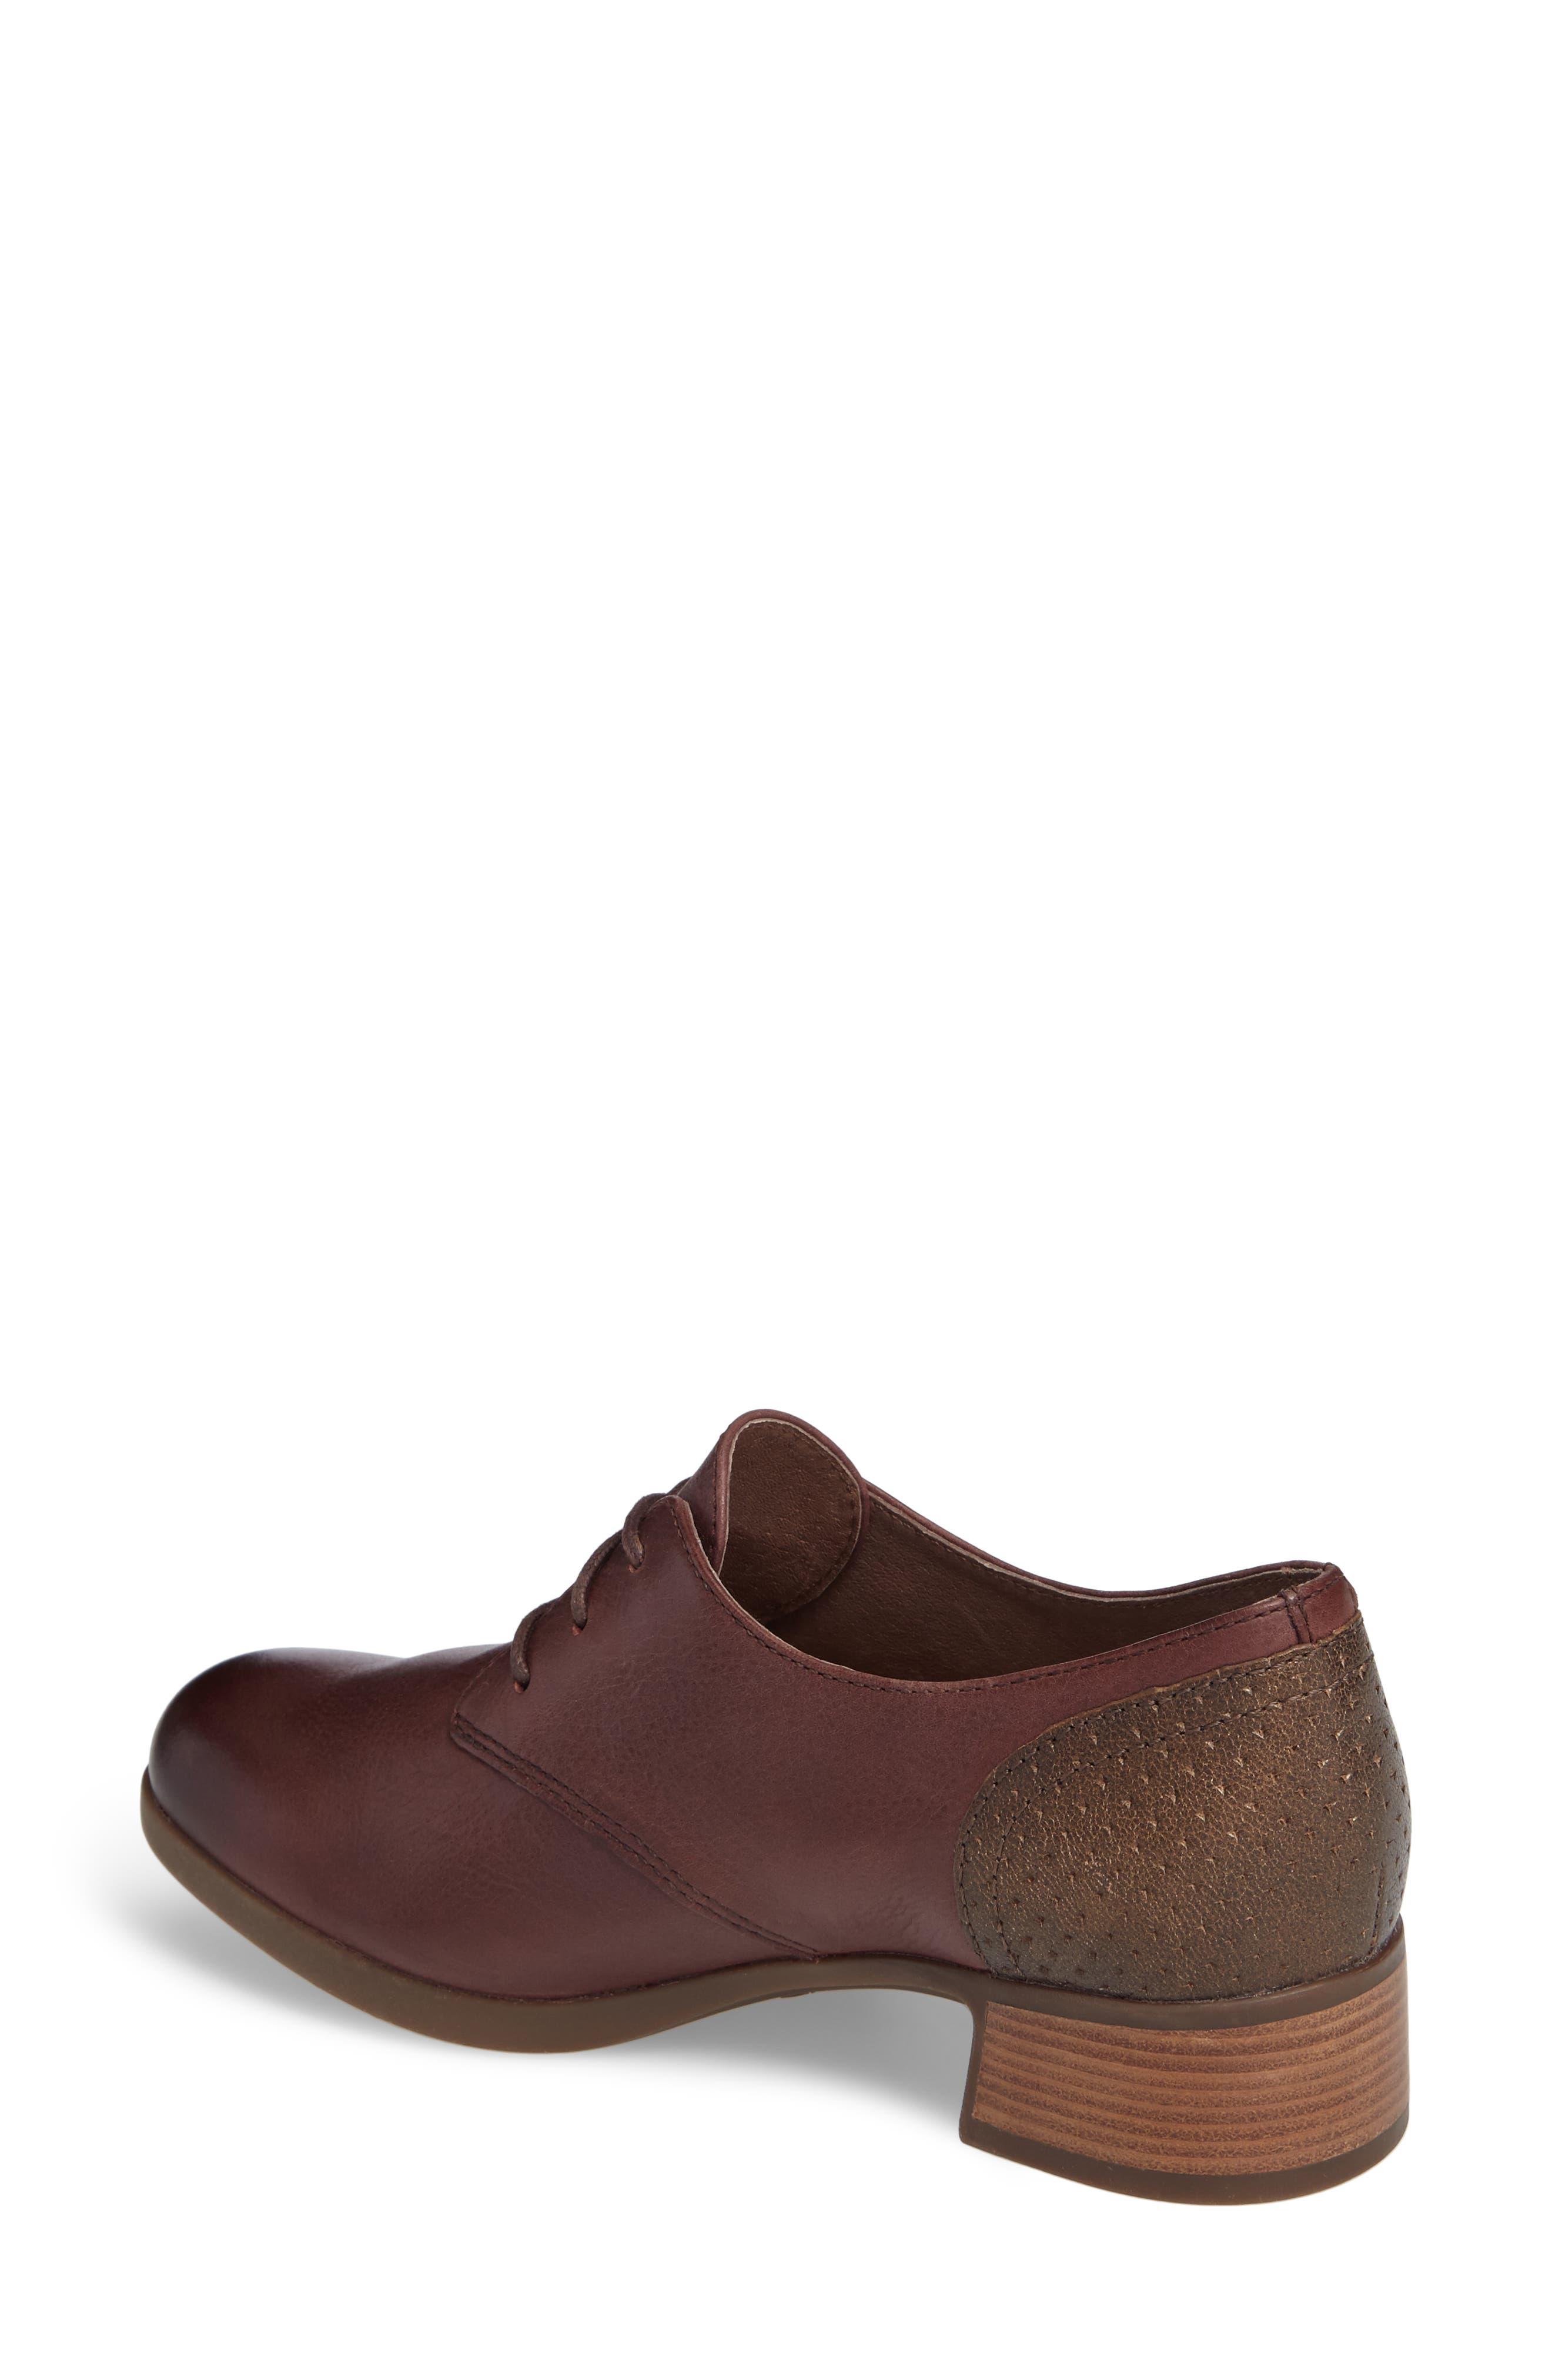 'Louise' Round Toe Derby,                             Alternate thumbnail 2, color,                             WINE BURNISHED LEATHER